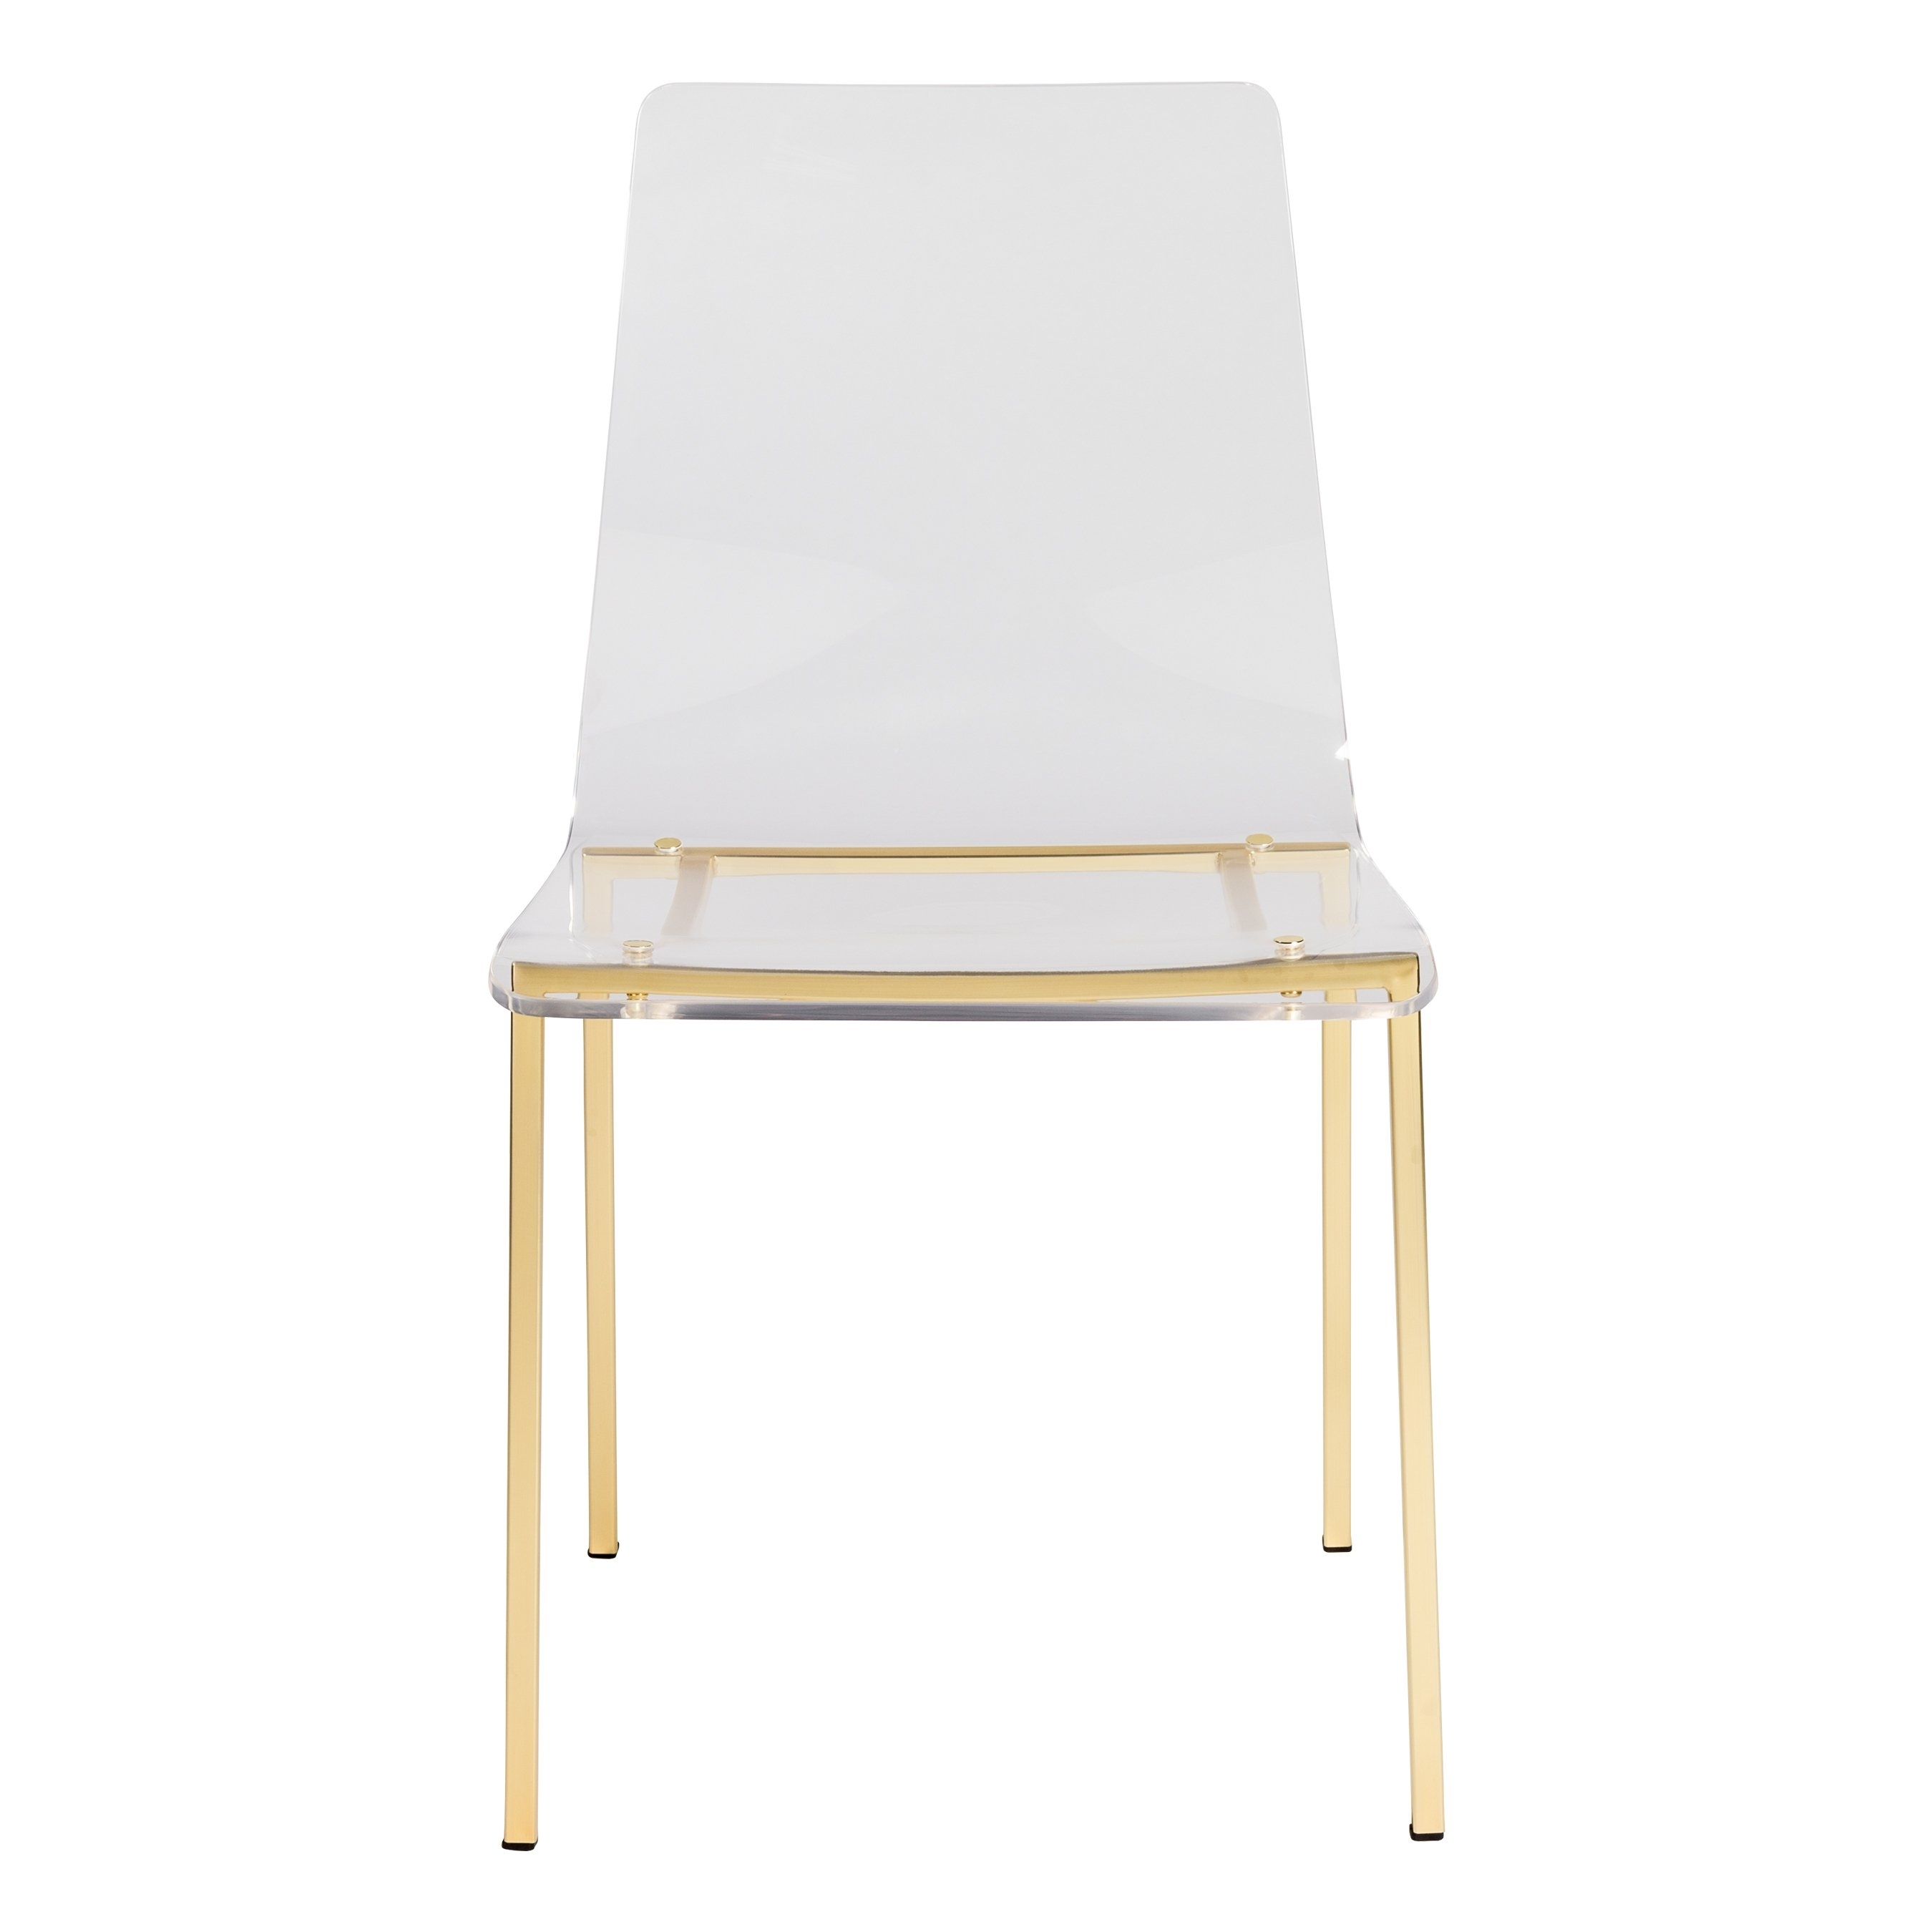 Burton Metal Side Chairs With Wooden Seat Regarding Newest Shop Chloe Side Chair In Clear Acrylic With Matte Brushed Gold Legs (#4 of 20)